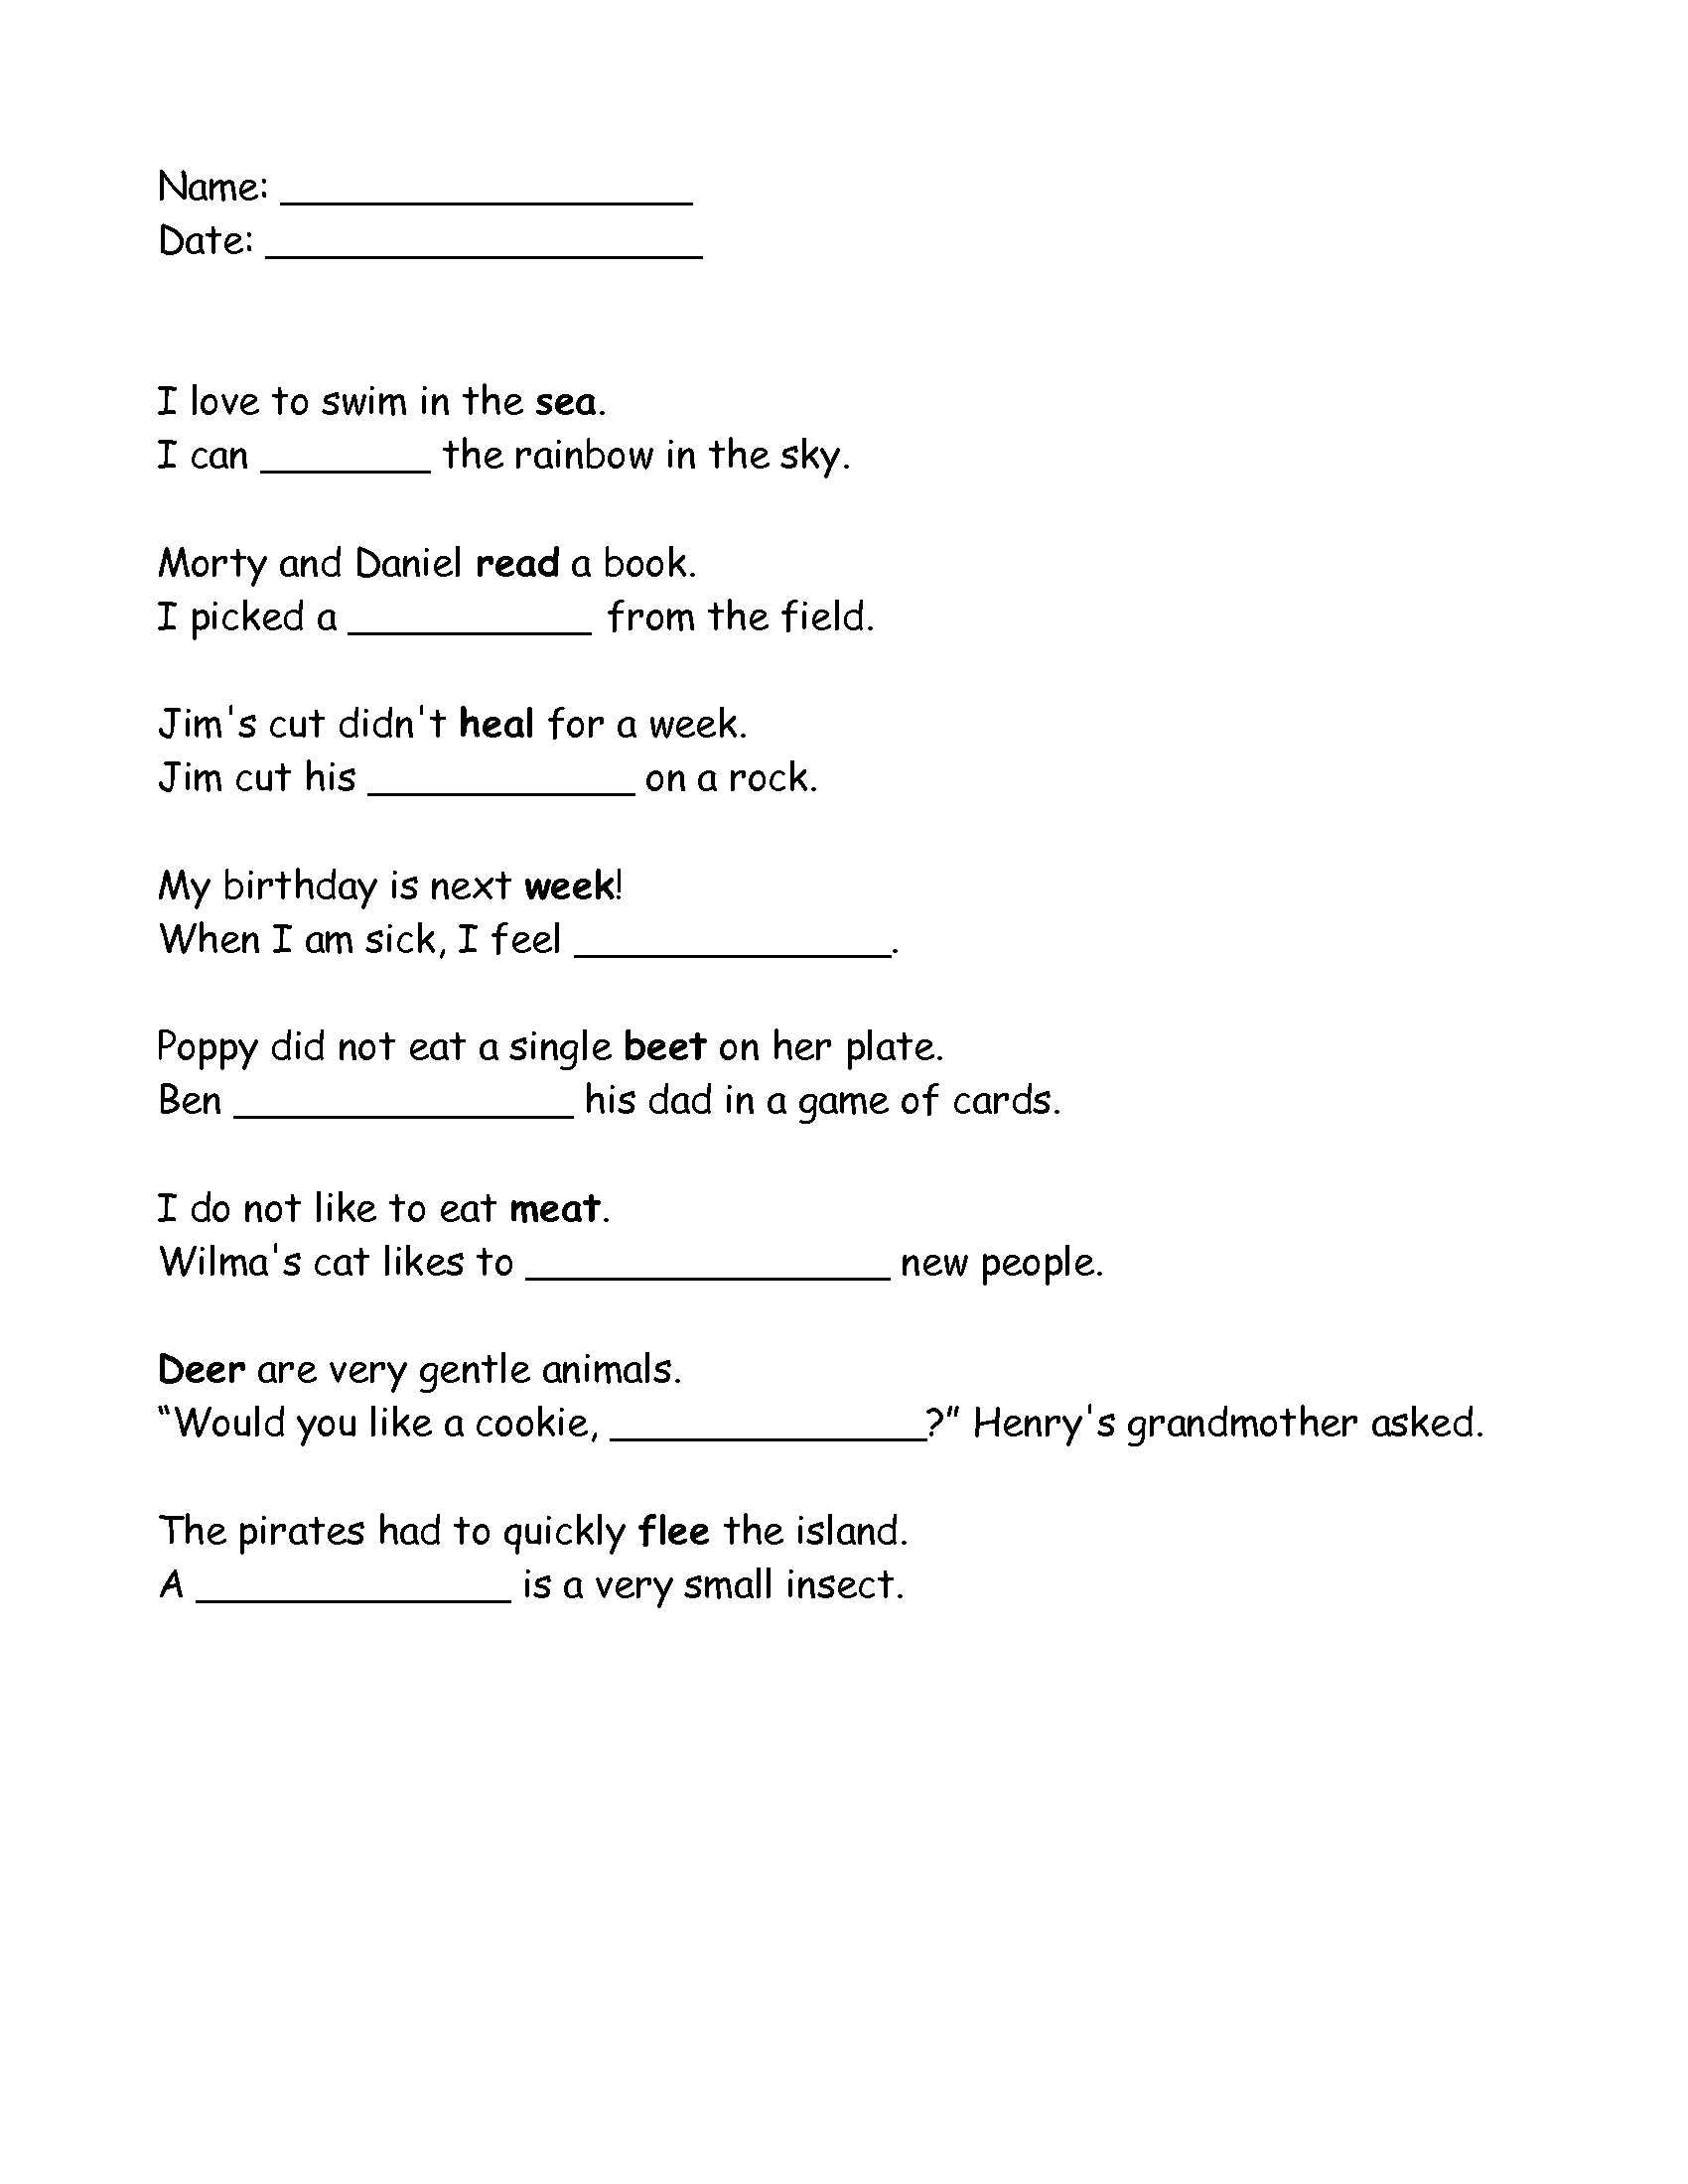 Grade 2 Homophones Ee And Ea Worksheet That I Made Click On Image For Full Worksheet